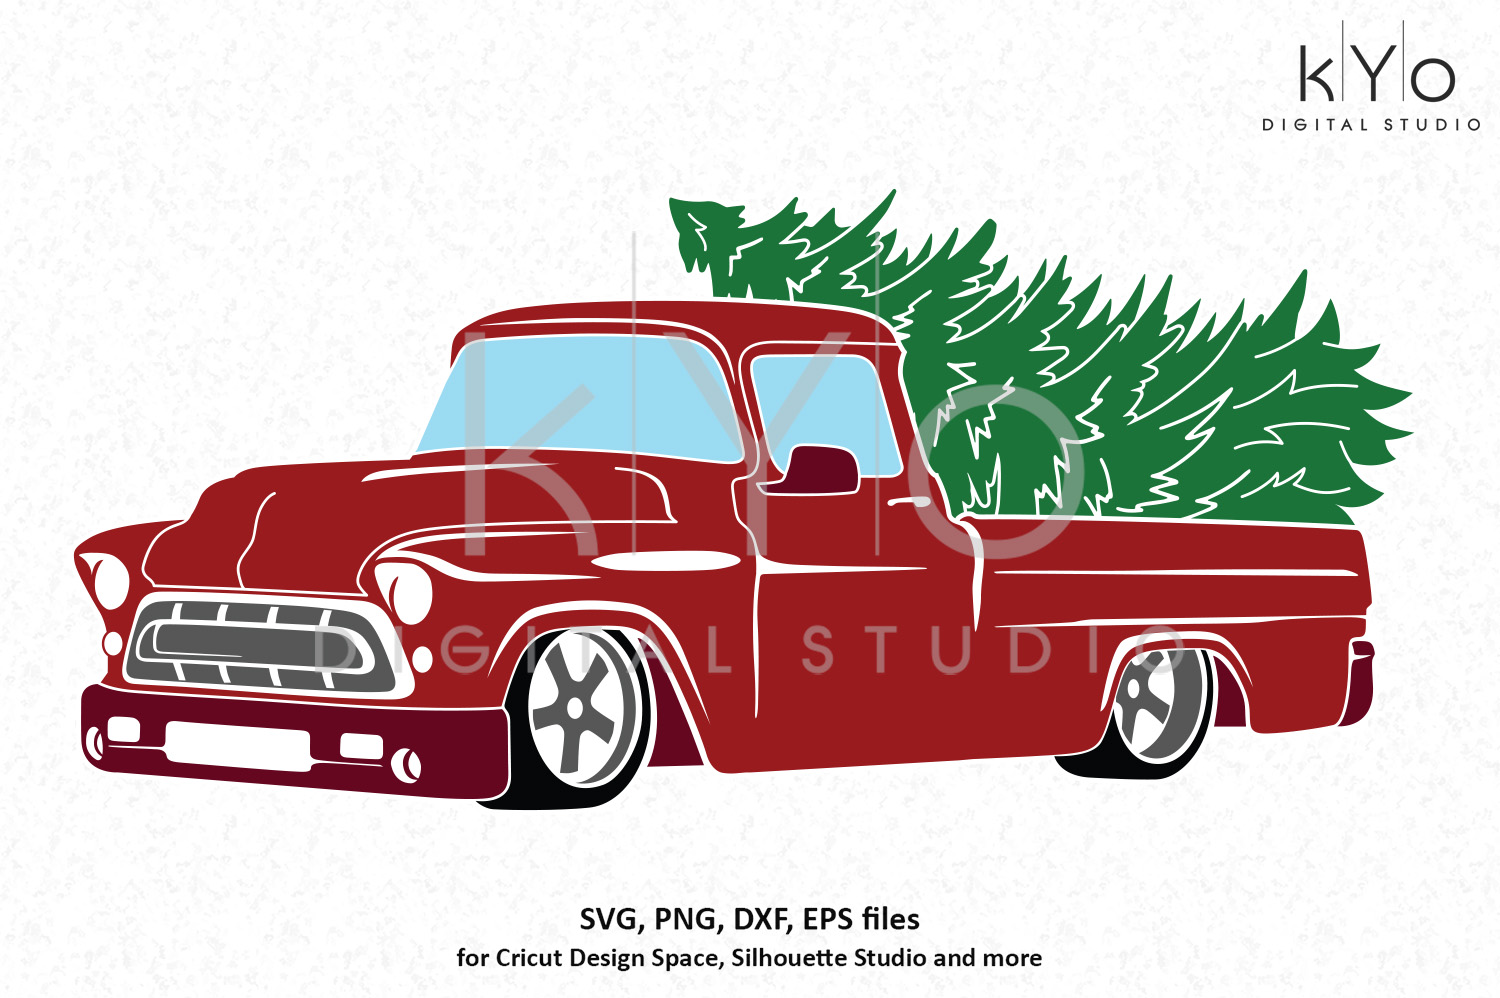 Chevy Christmas truck SVG PNG DXF EPS files.